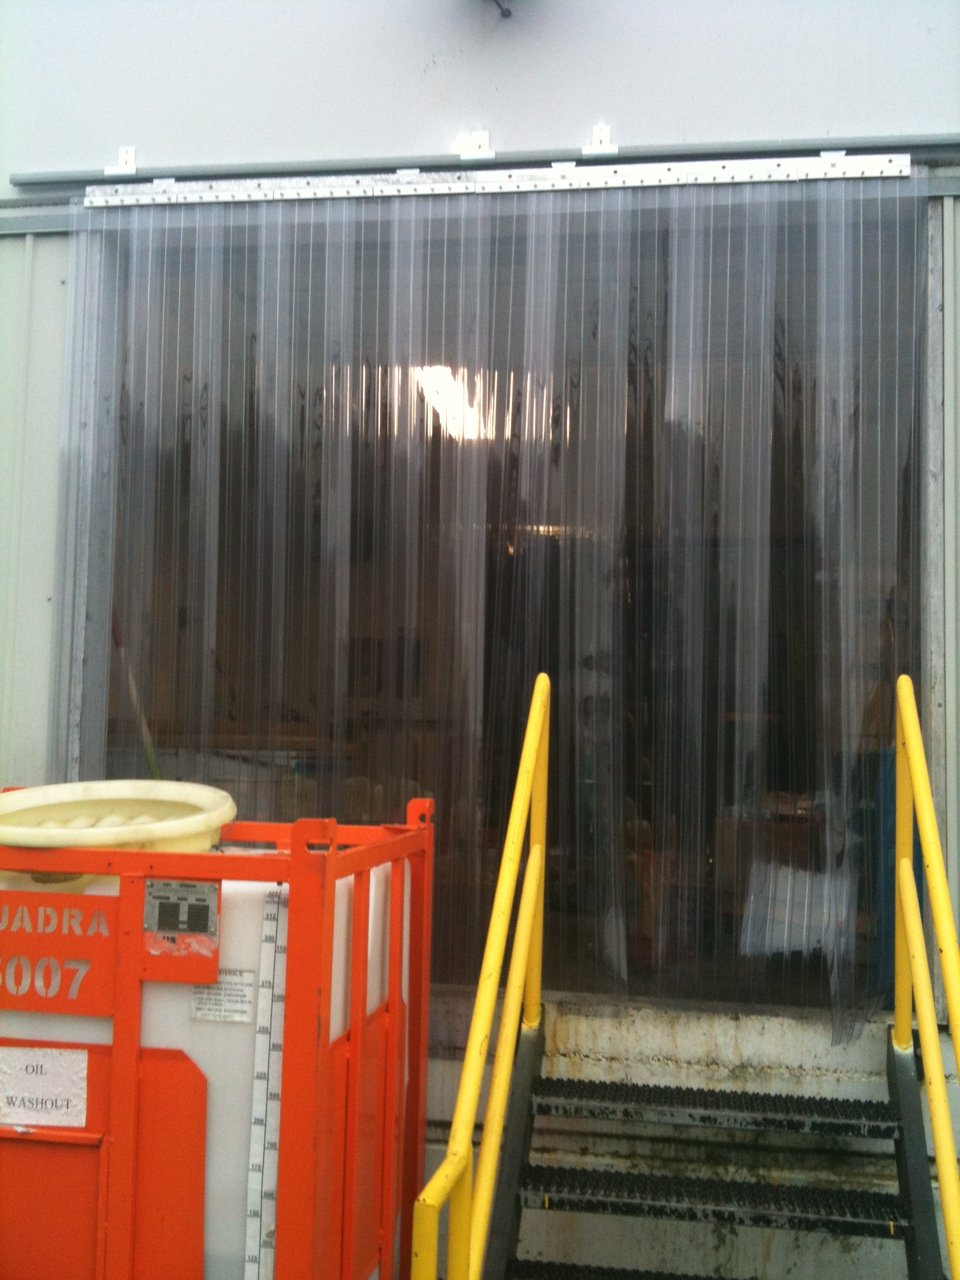 Strip-Curtains.com: Strip Door Curtain - 144 in. (12 ft) width X 168 in. (14 ft) height - RIBBED Anti Scratch 12 in. strips with 100% overlap - Stainless Steel Hardware (Hardware included)